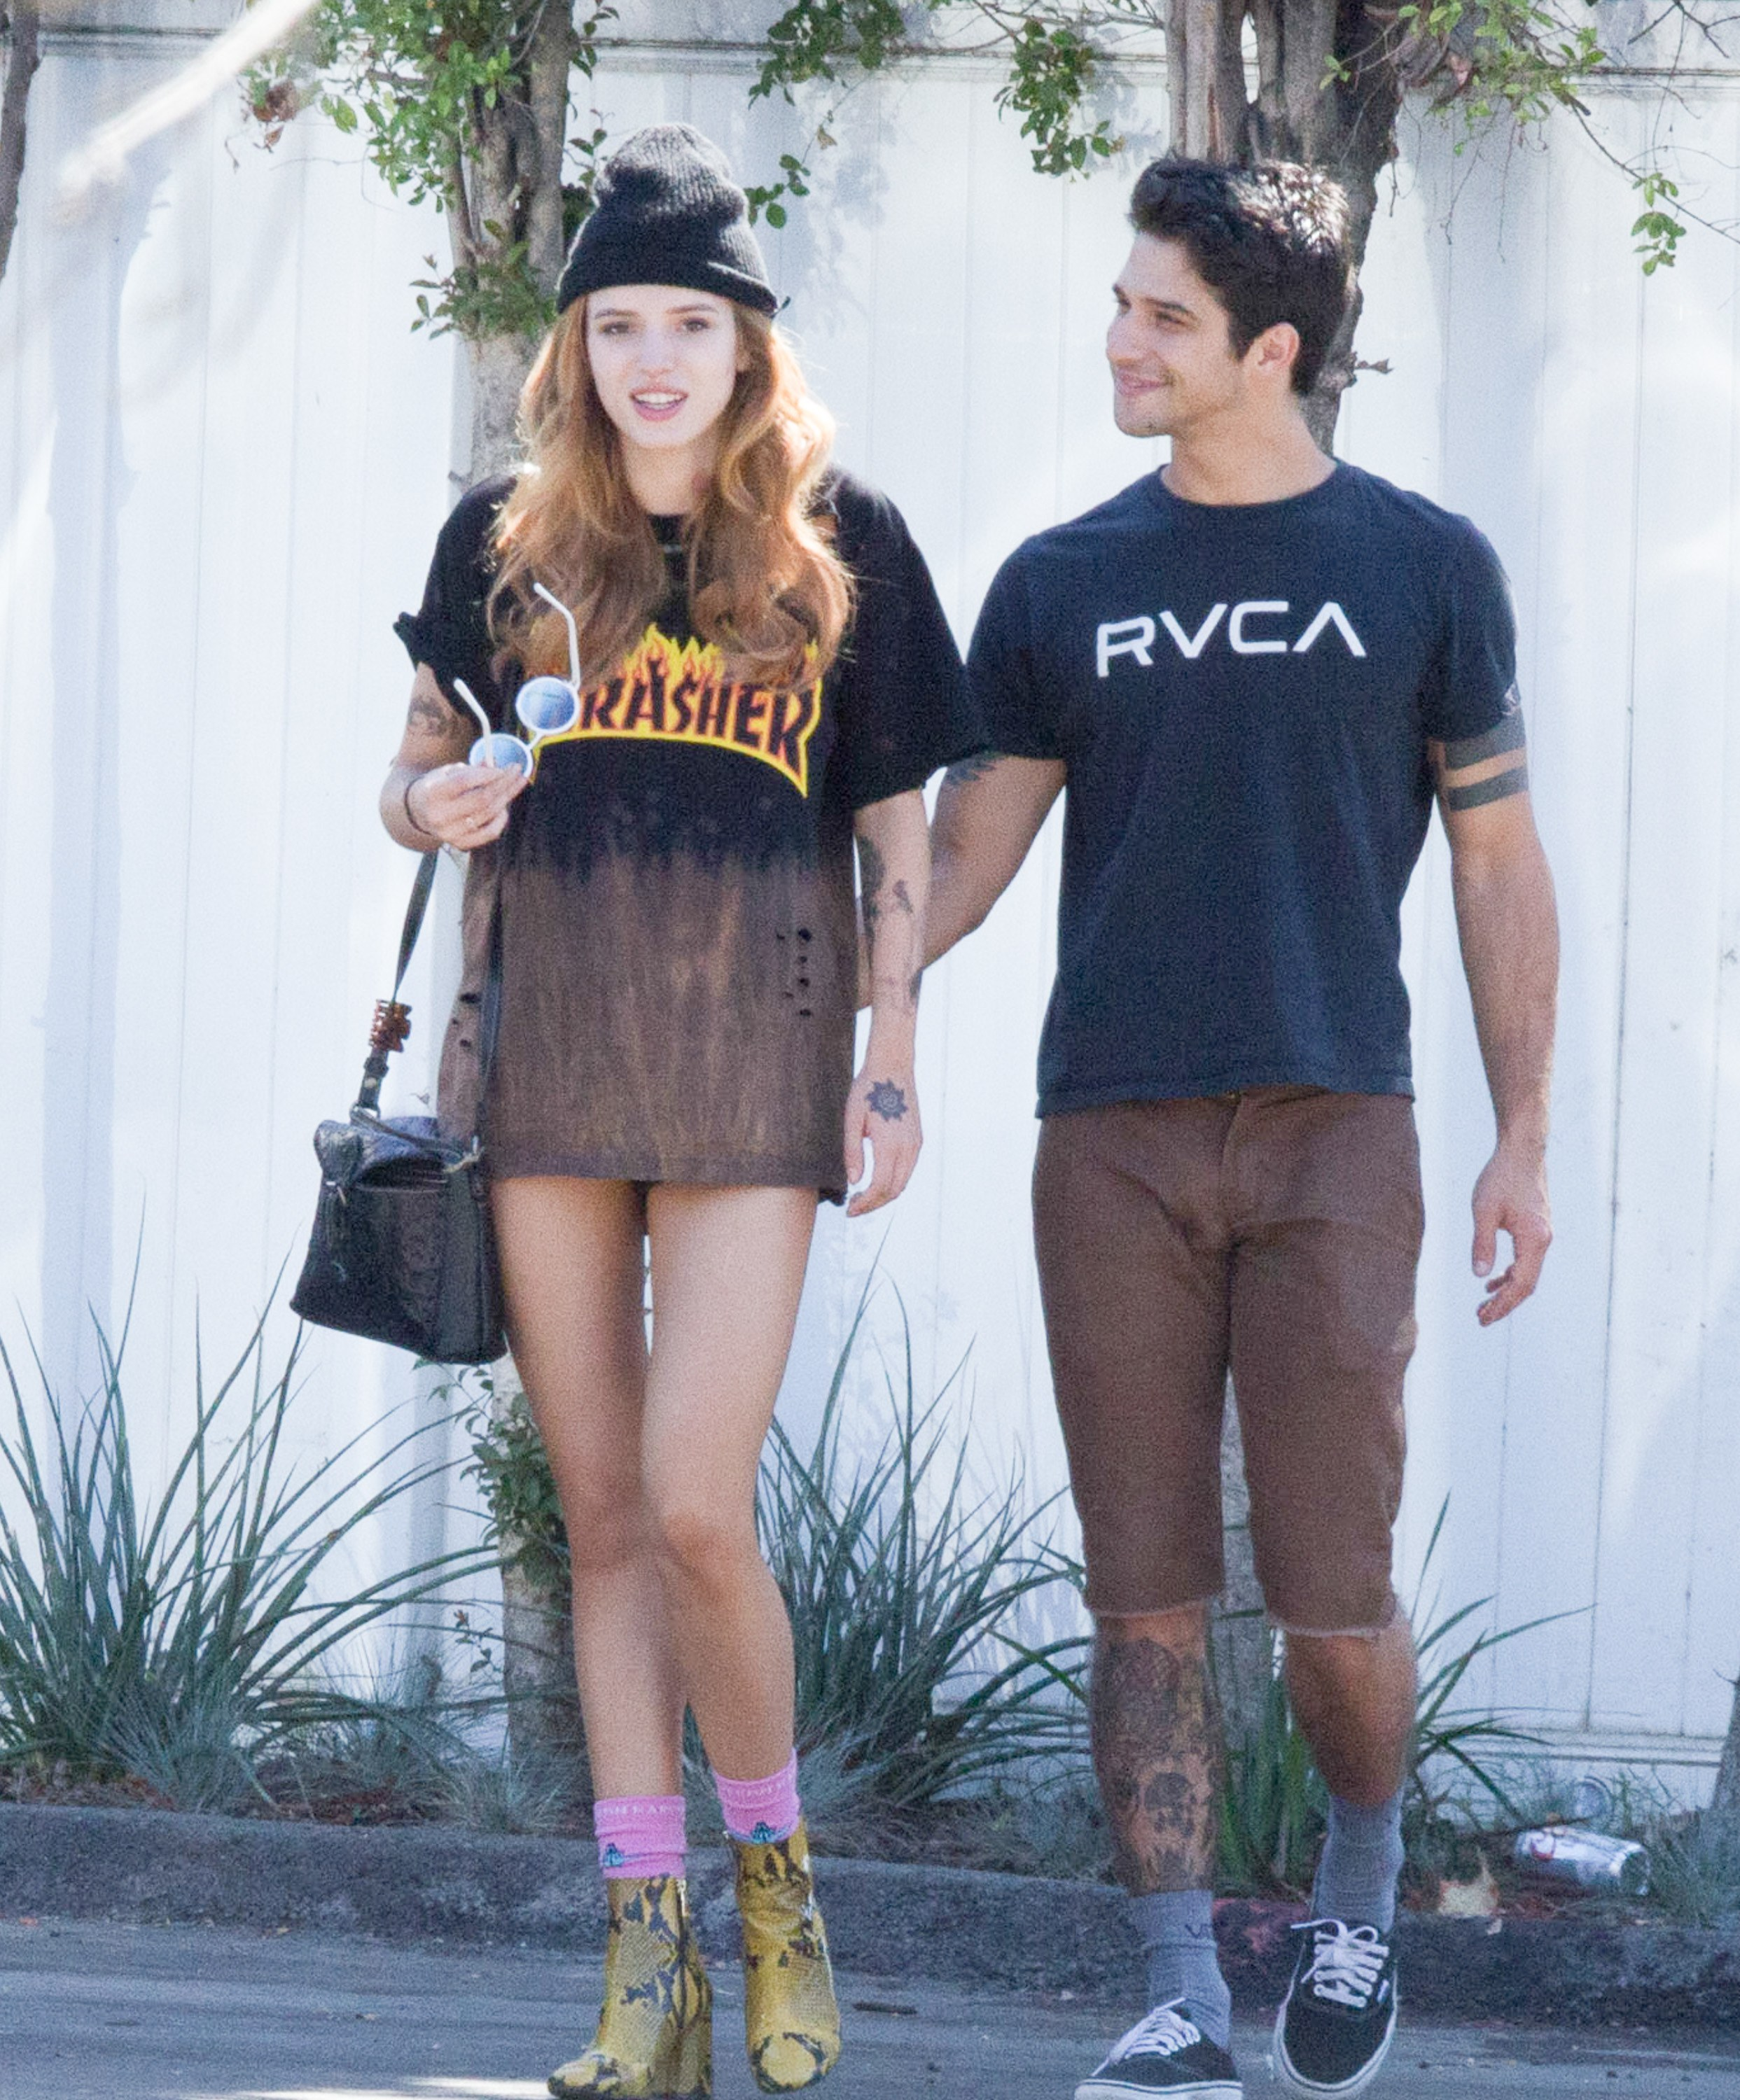 Actress Bell Thorne wearing her Thrasher tee as a dress...ooh la la.